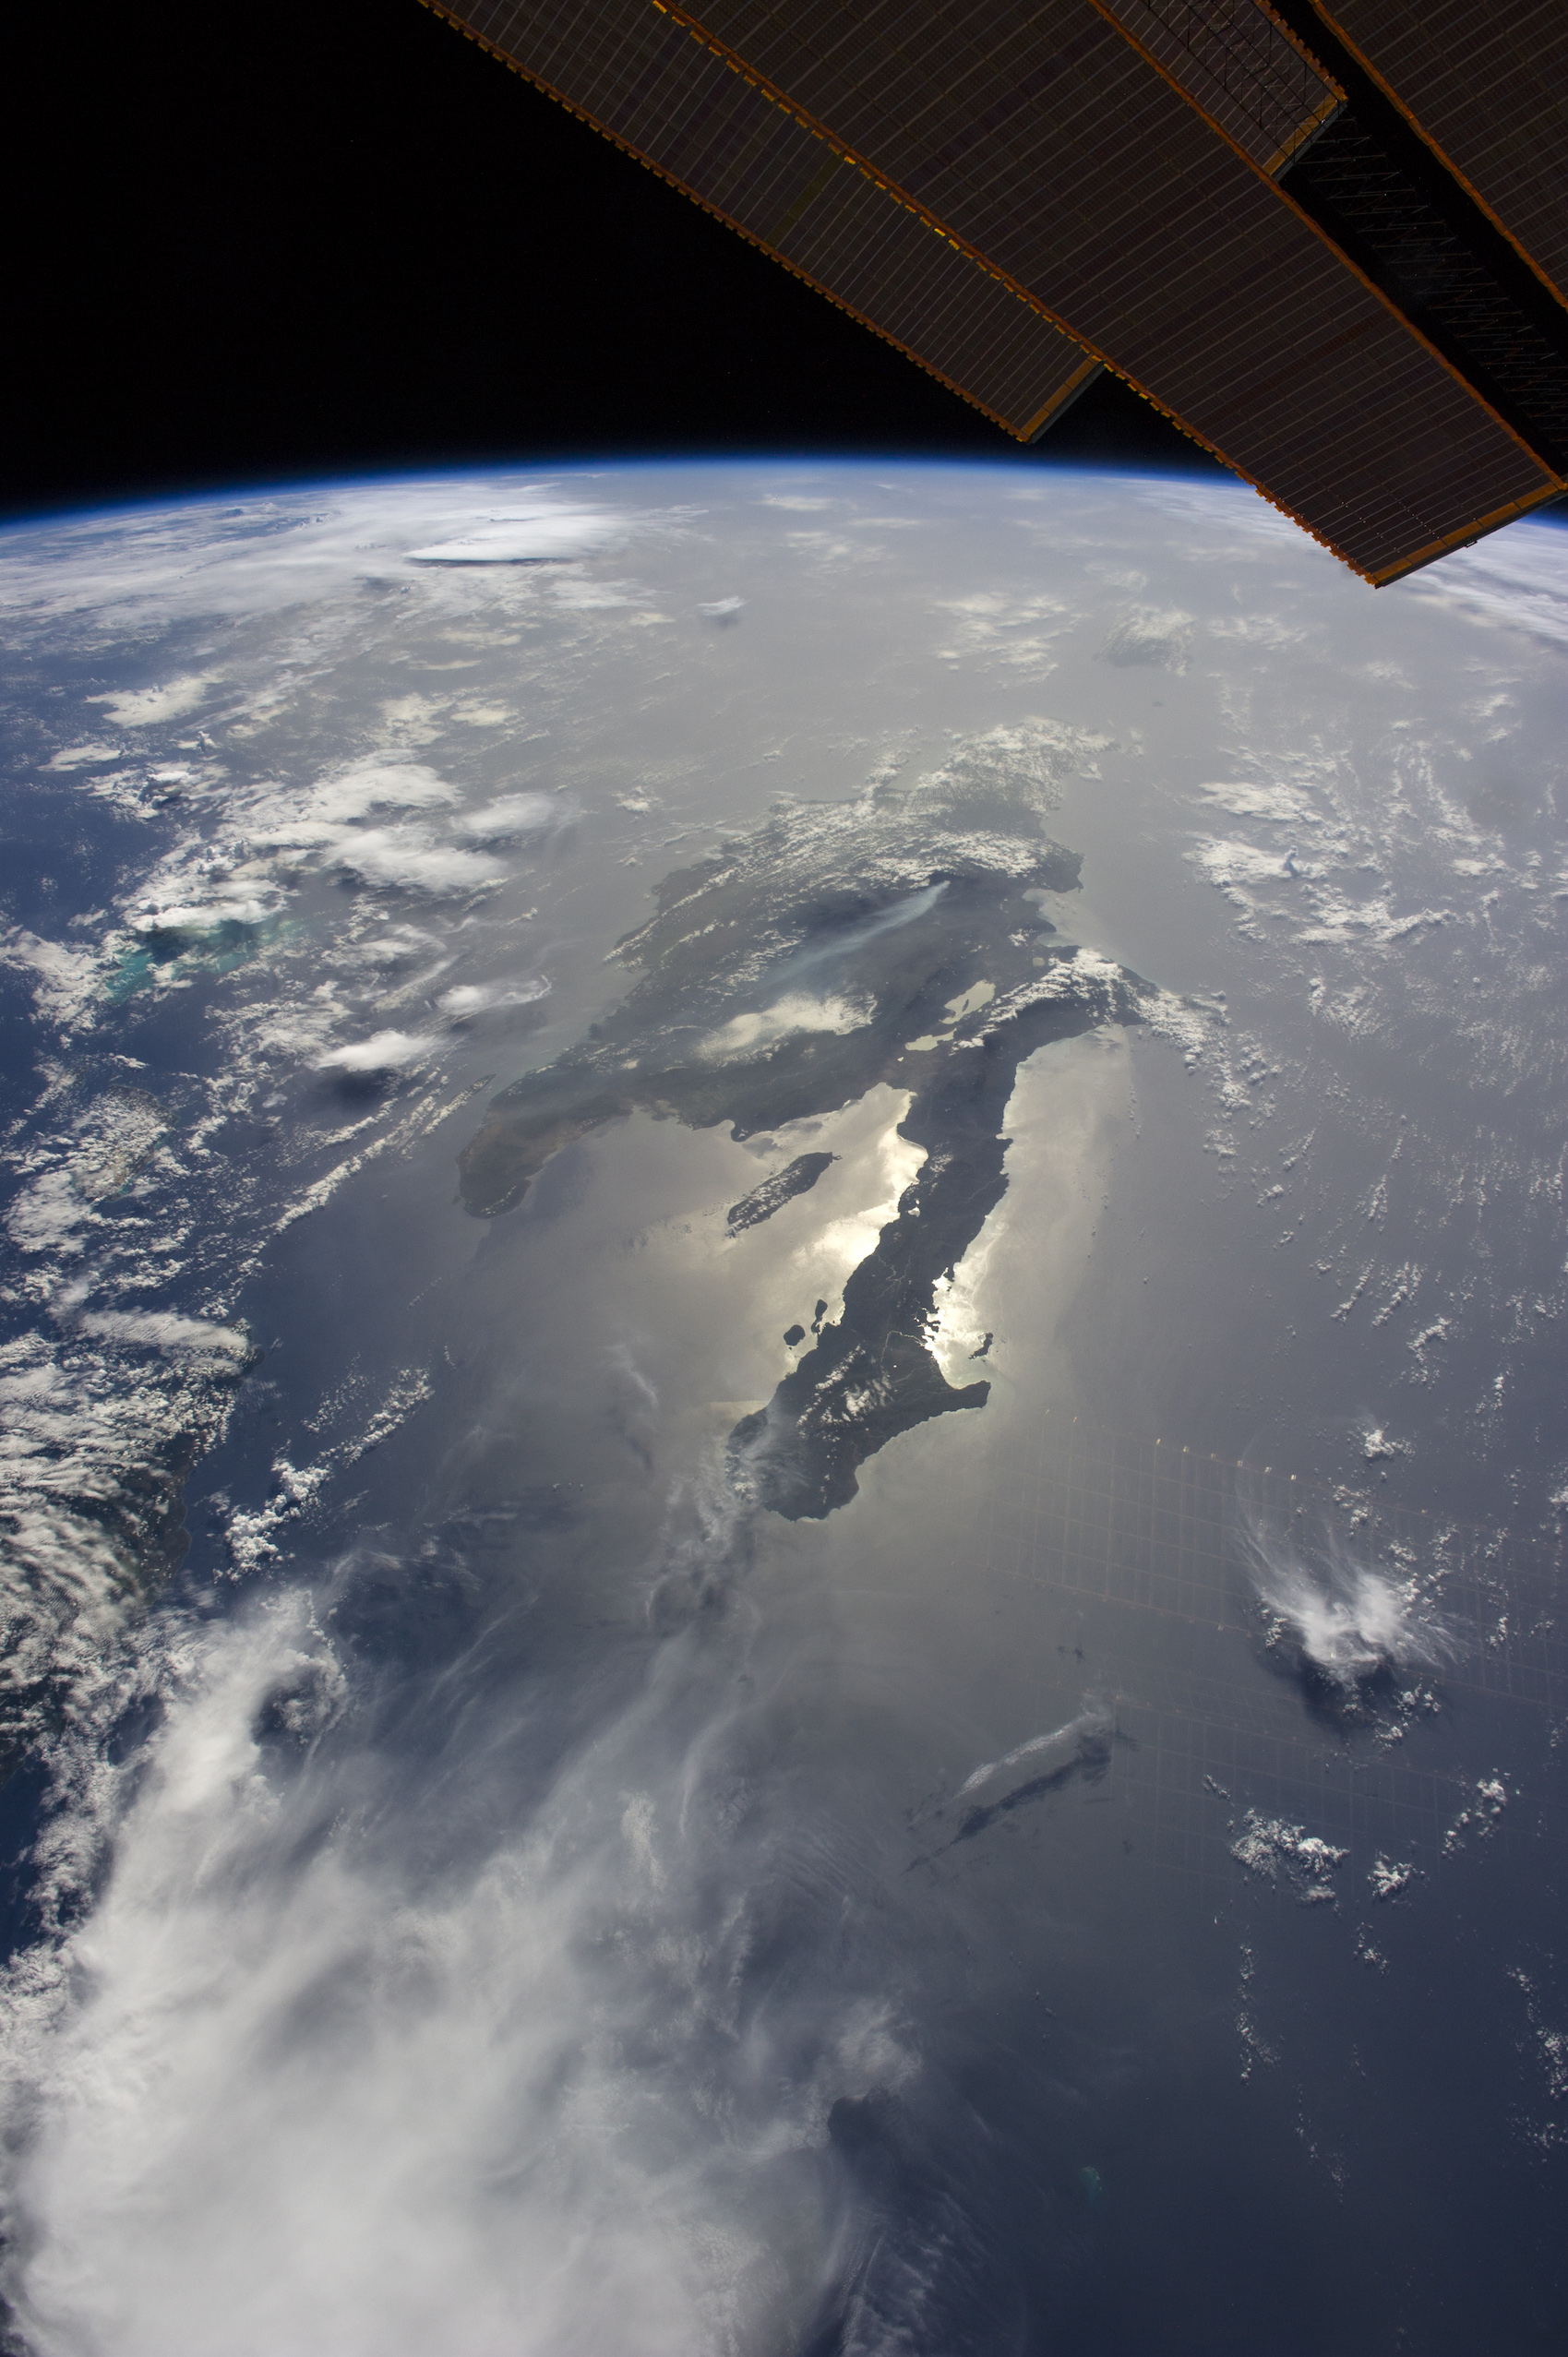 Today's Image of the Day comes thanks to the NASA Earth Observatory and features a look at the island of Hispaniola in the Caribbean Sea.